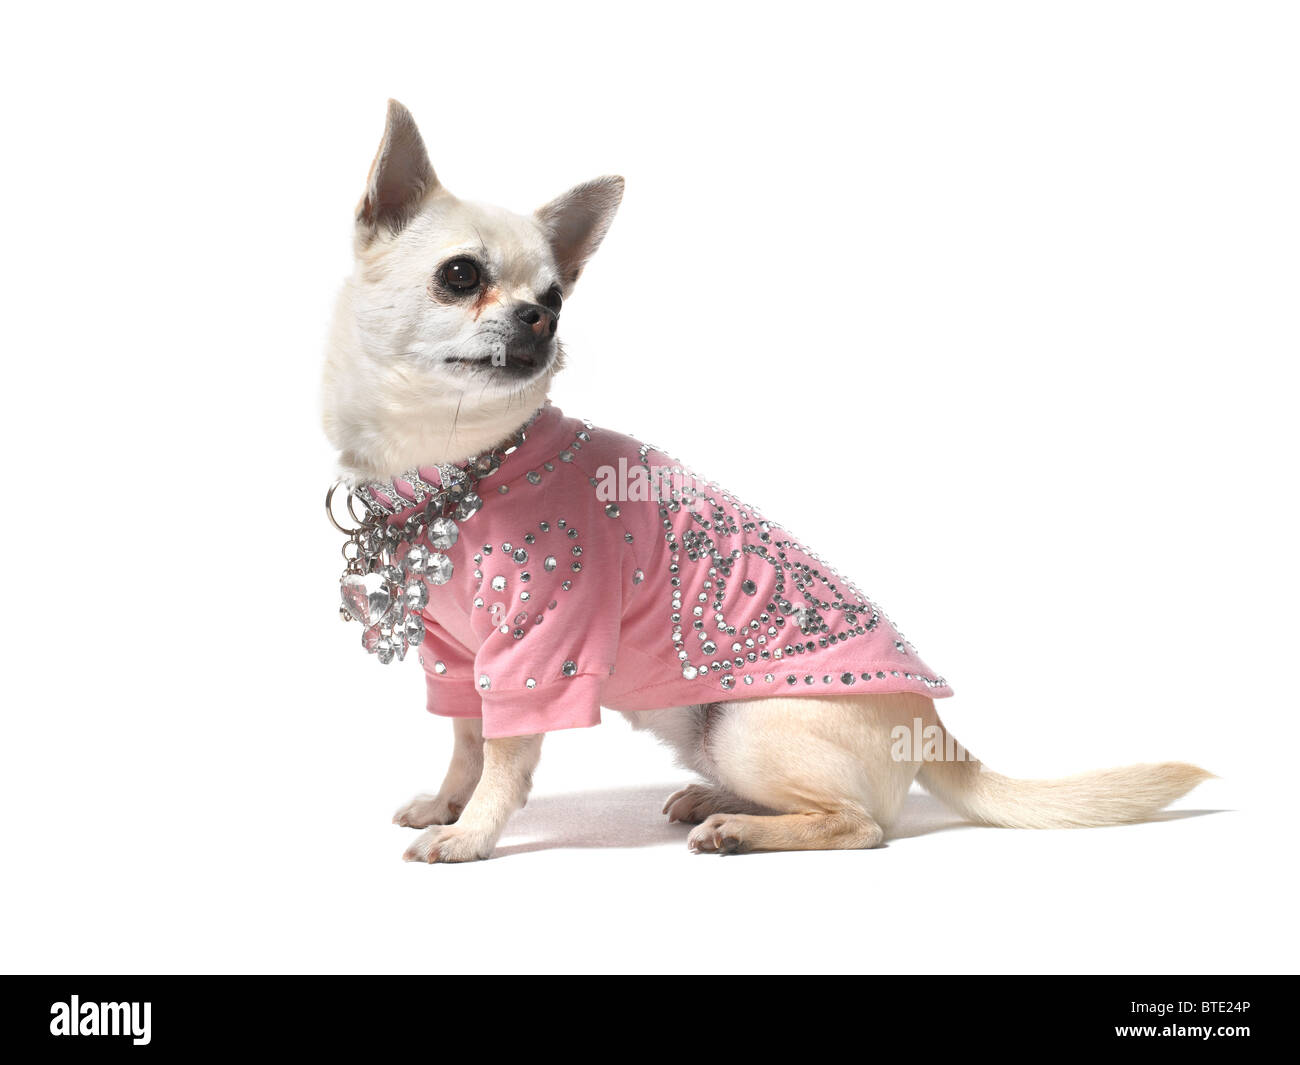 A Chihuahua sitting on a white background - Stock Image